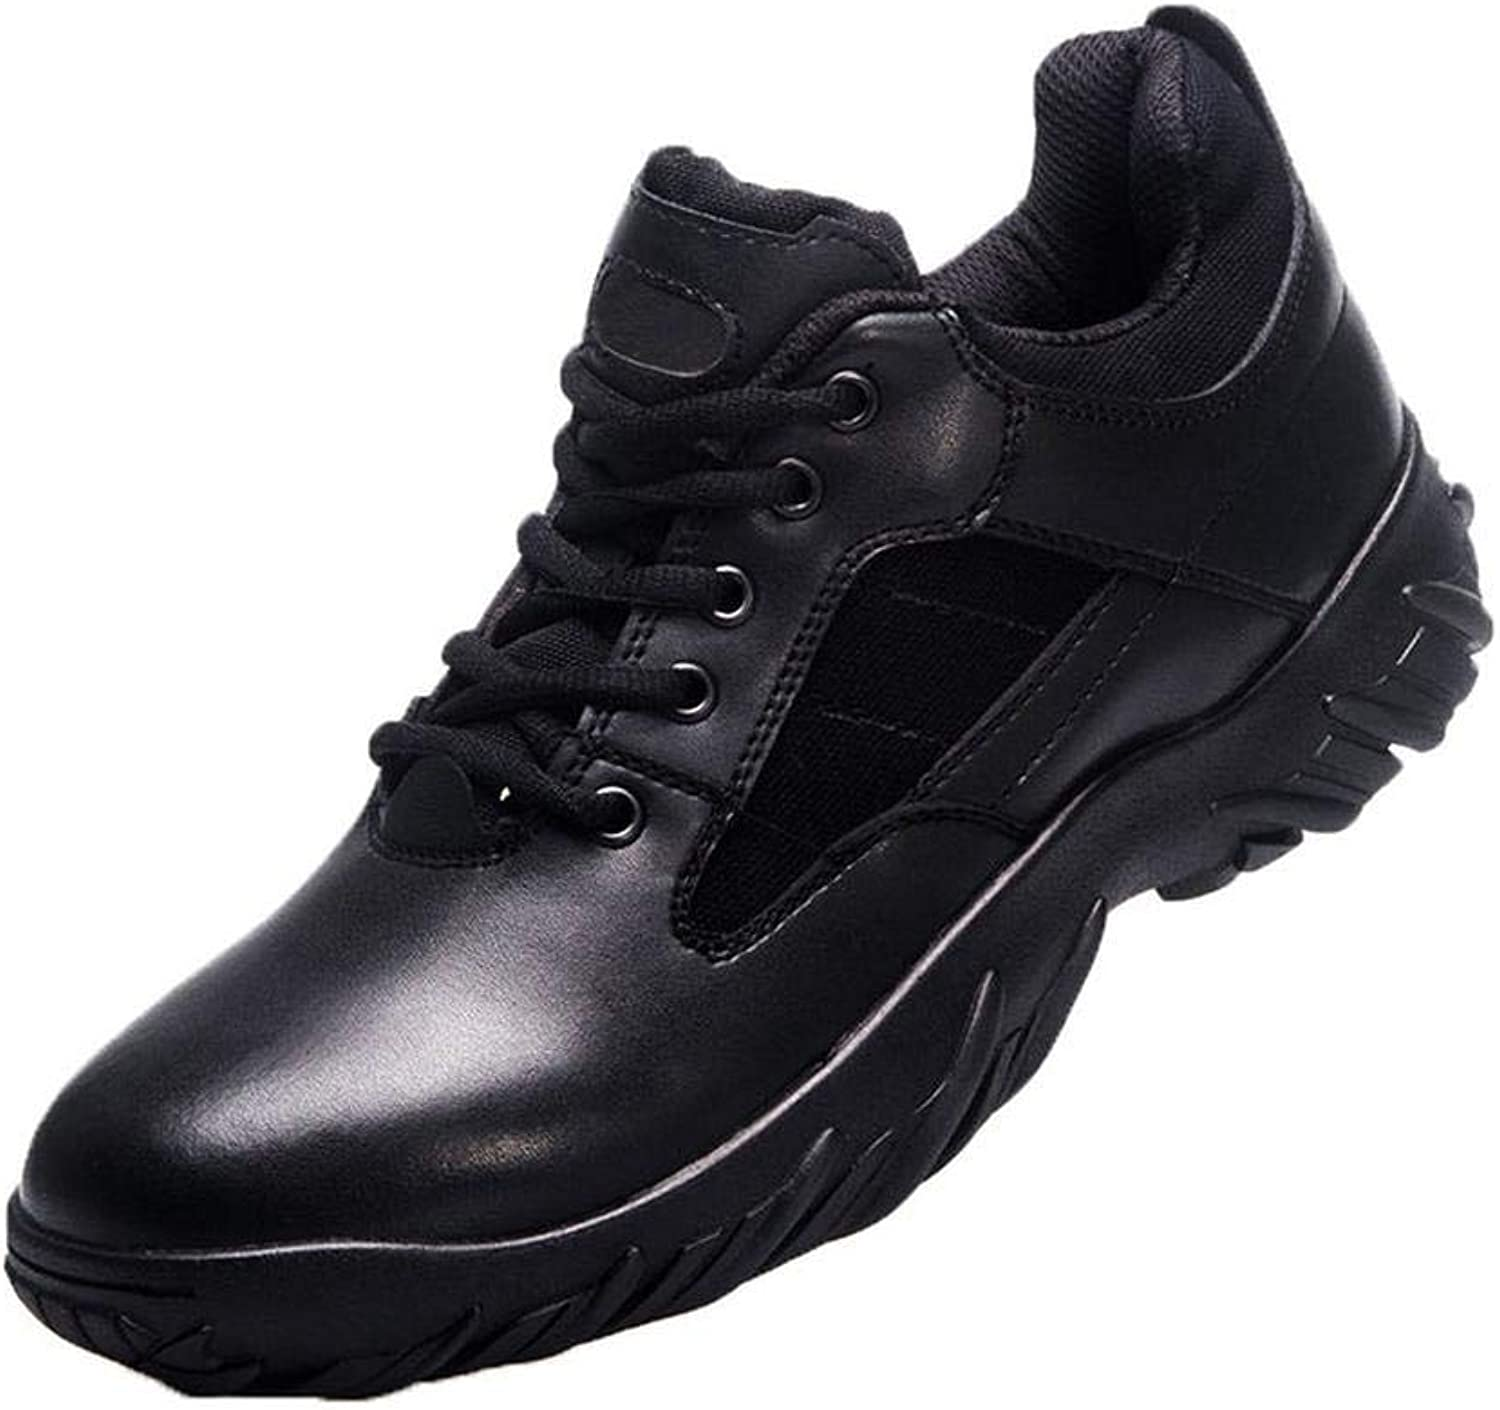 QIKAI Hiking shoes Military boots summer low ultra light shock absorption training shoes